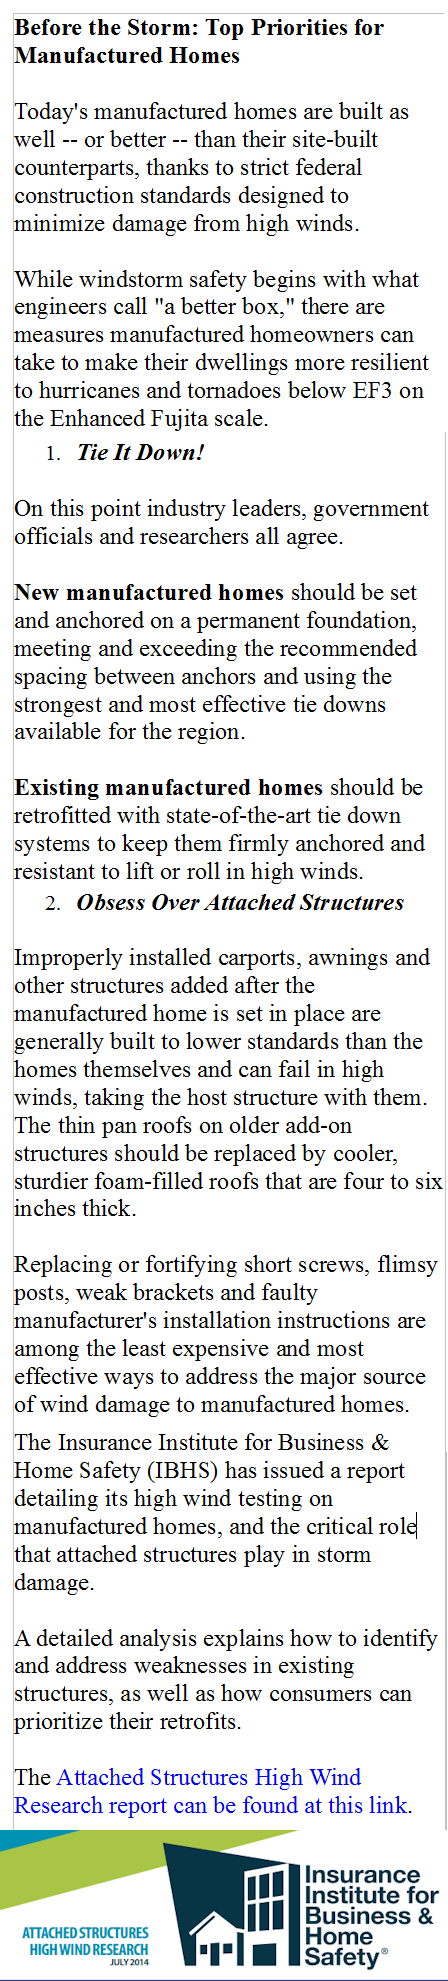 Weathering the Storms: How Manufactured Homes Can Do It Better ... on mobile home hold downs, mobile home lights, mobile home stands, mobile home add ons, mobile home anchors home depot, mobile home mirrors, mobile home carriers, mobile home covers, mobile home parts, mobile home paint, mobile home lifts, mobile home tools, mobile home filters, mobile home fittings, mobile home stickers, mobile home locks, mobile home wiring, mobile home turnbuckles, mobile home upgrades, mobile home electrical,